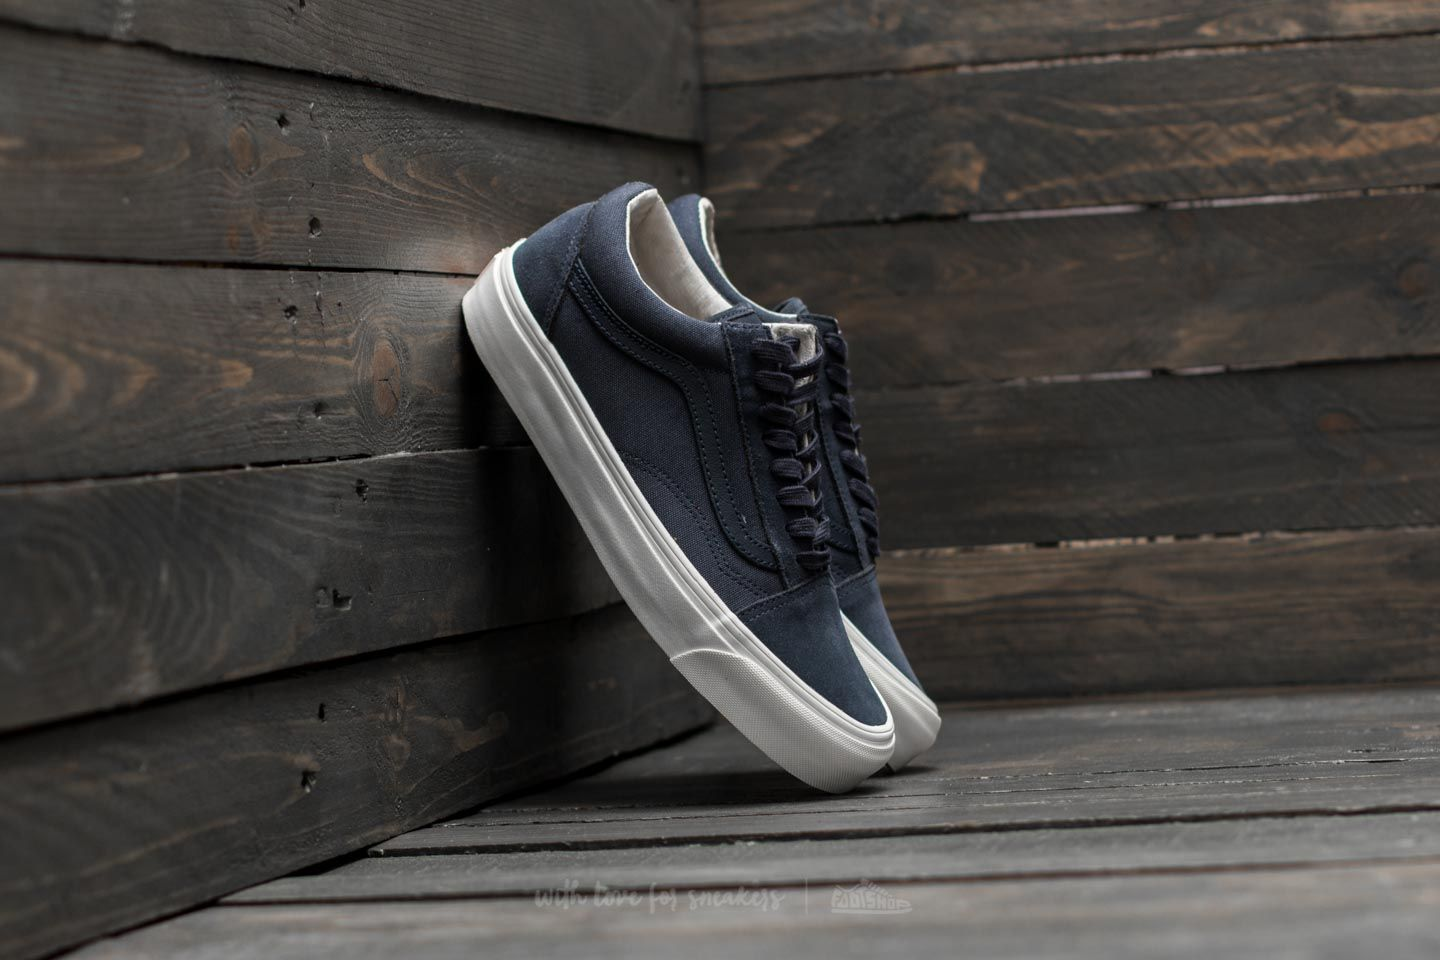 3f27c48e1e83 Vans OG Old Skool LX (Suede  Canvas) Parisian Night